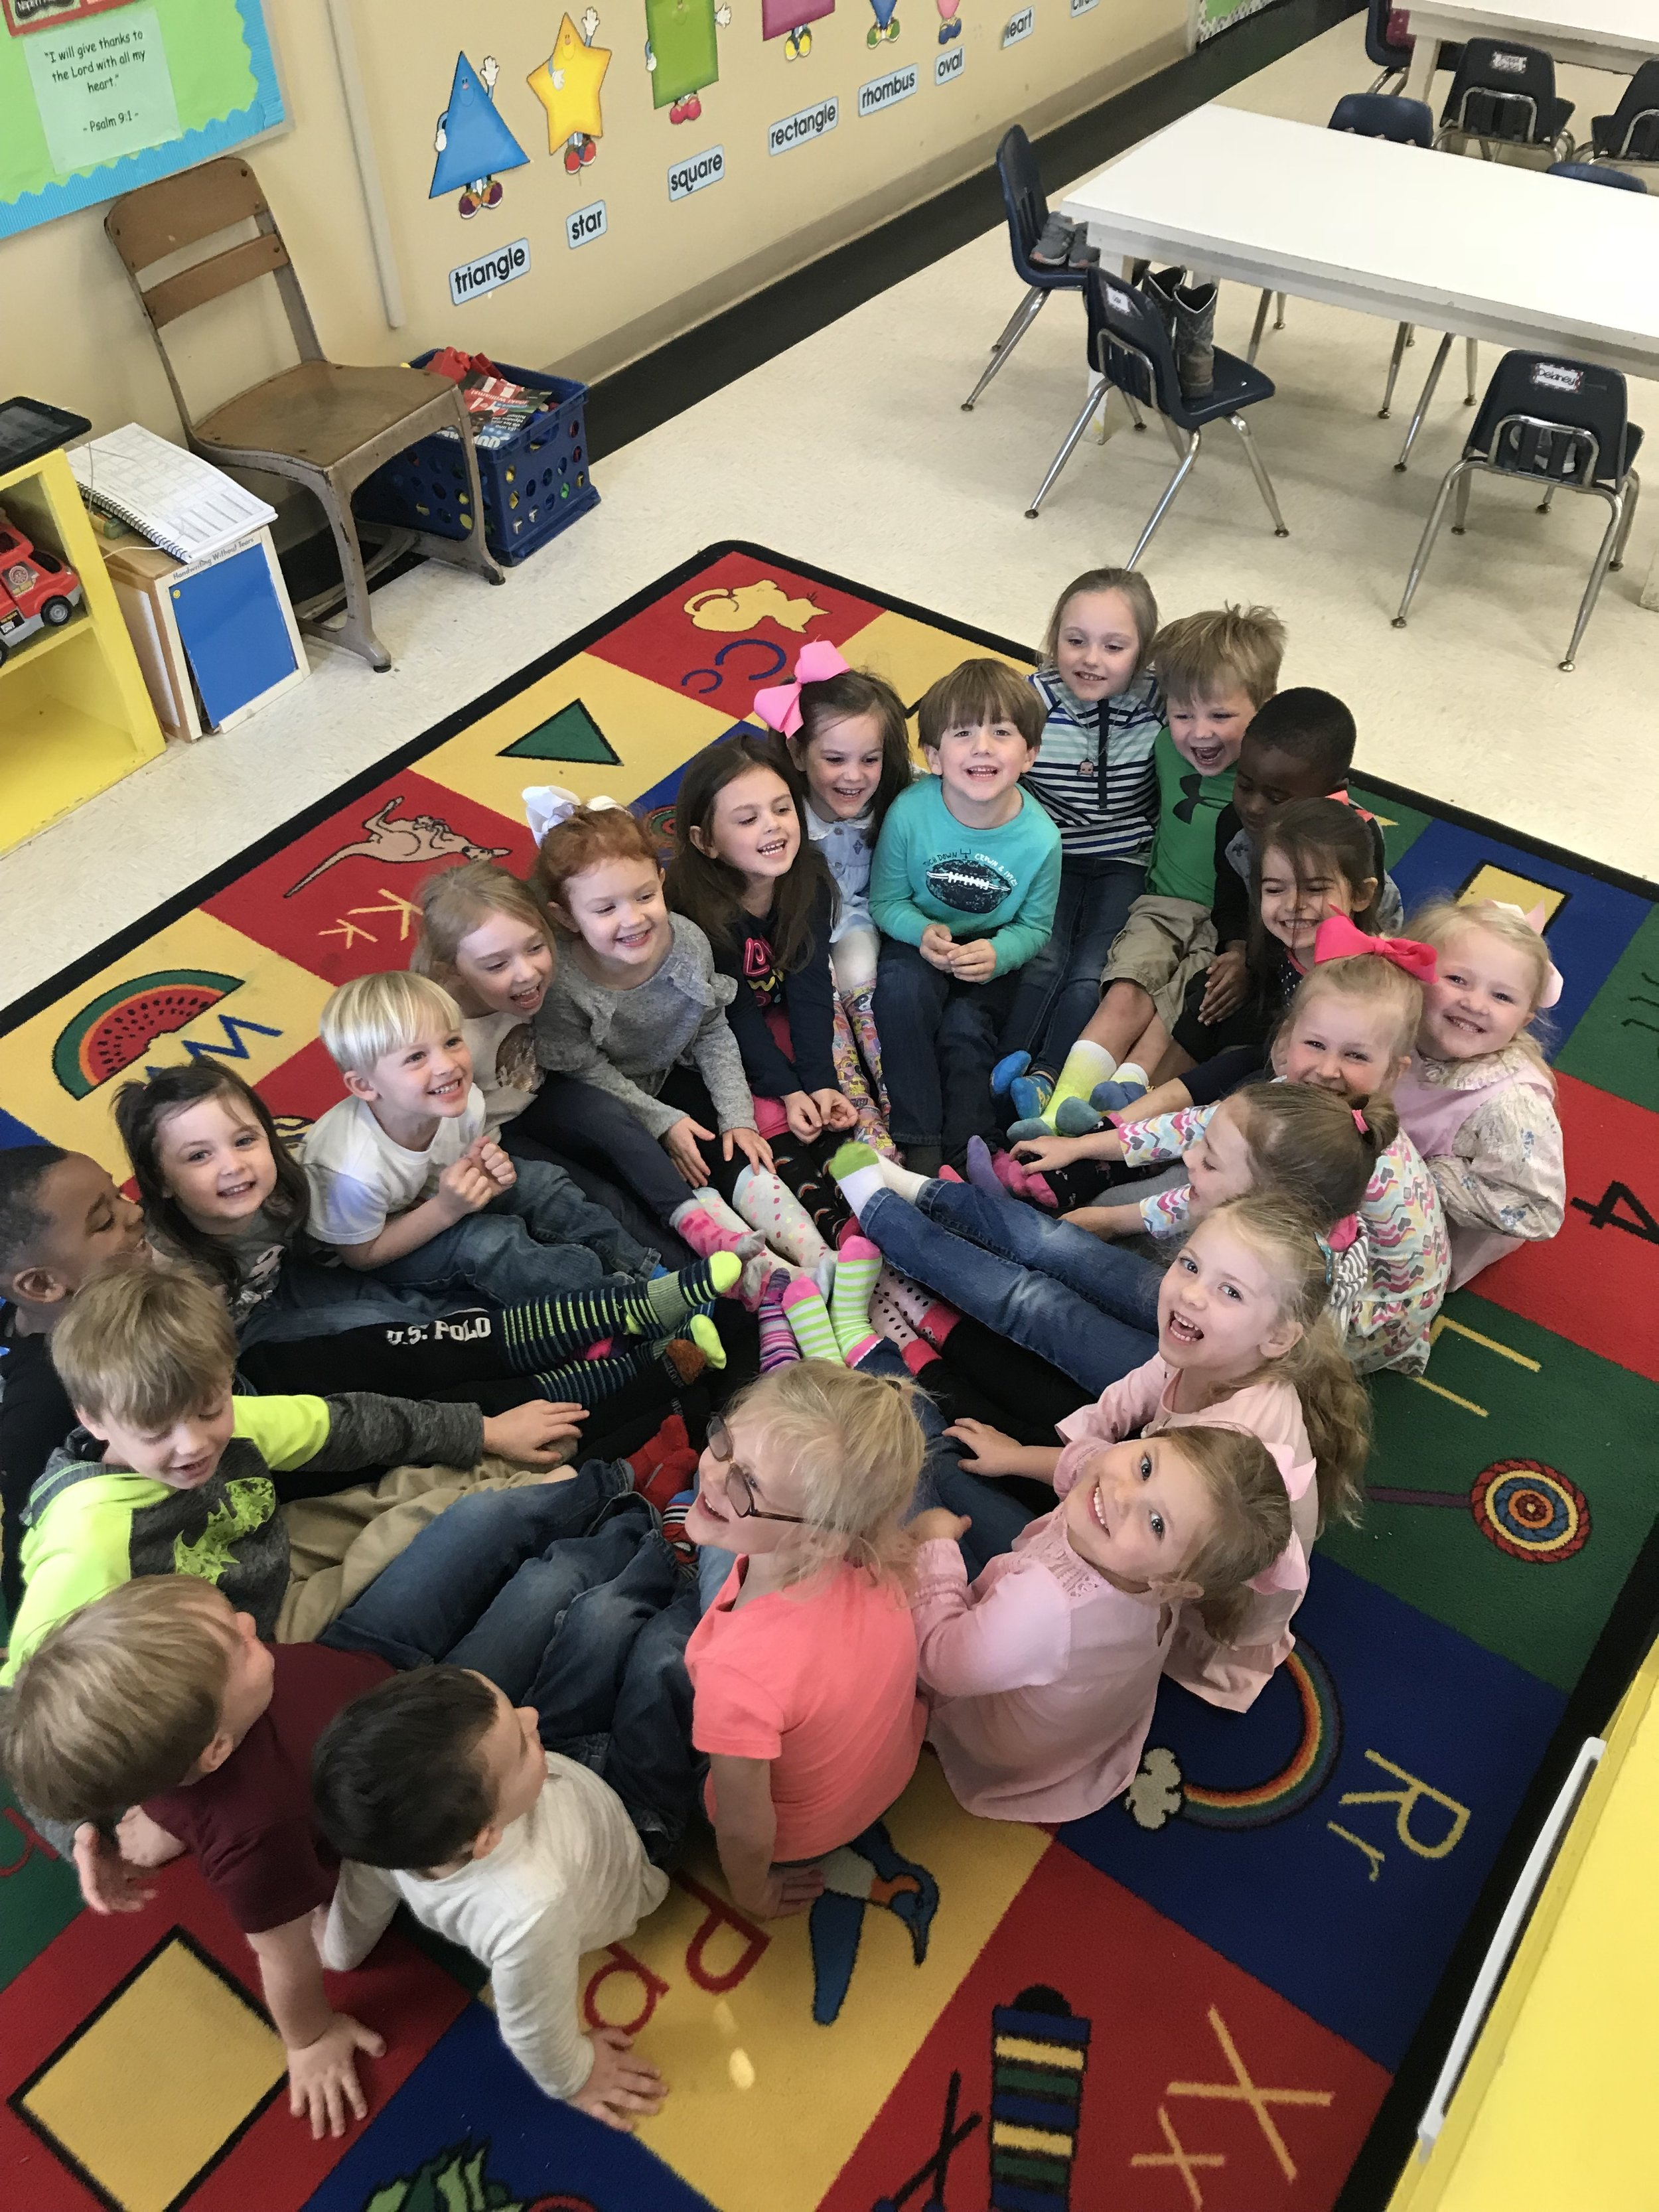 We ROCKED our socks for Down Syndrome — PRESBYTERIAN DAY SCHOOL